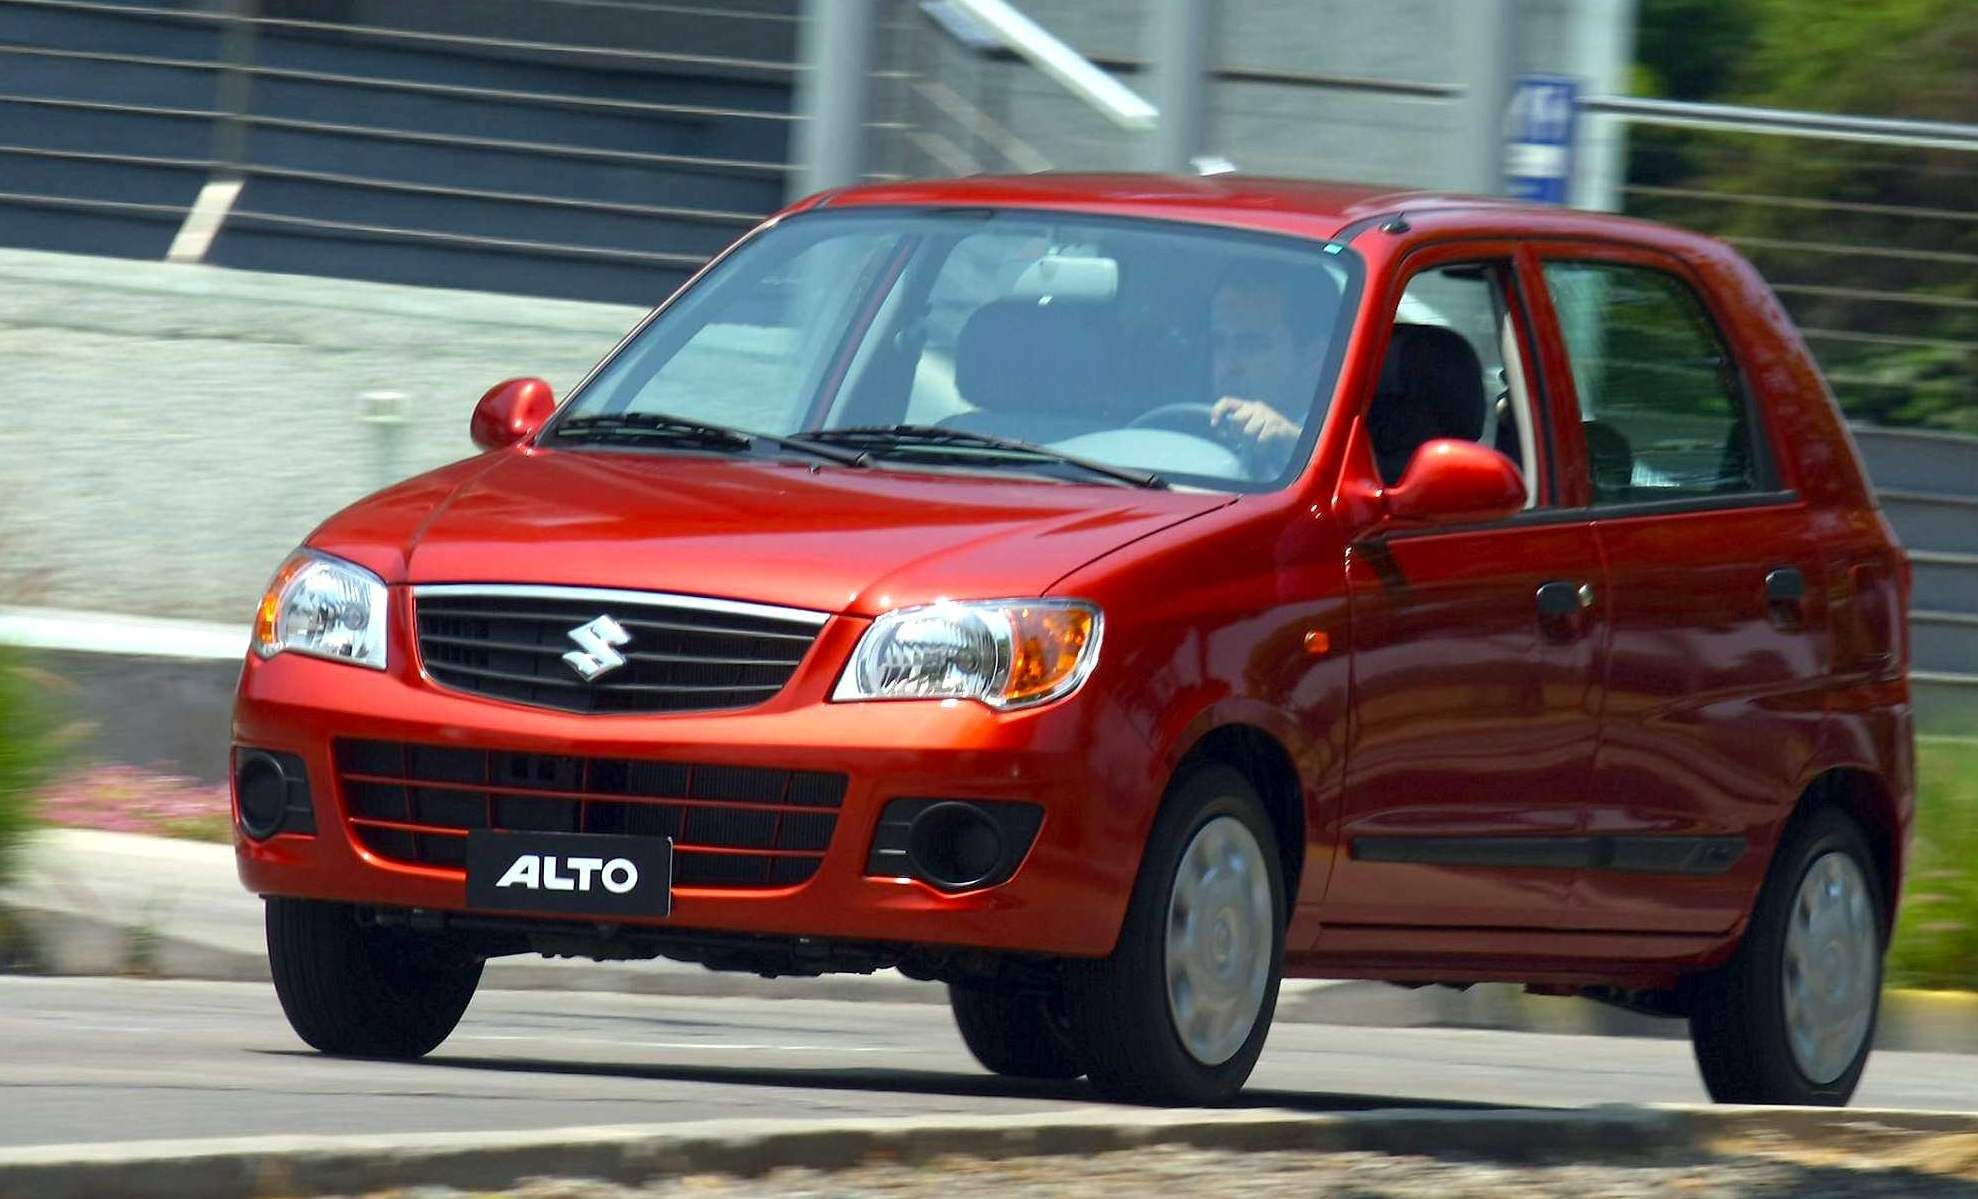 Maruti a star the maruti suzuki a star is one of the best selling cars in india it has has peppy and efficient engine nimble and agile for traff